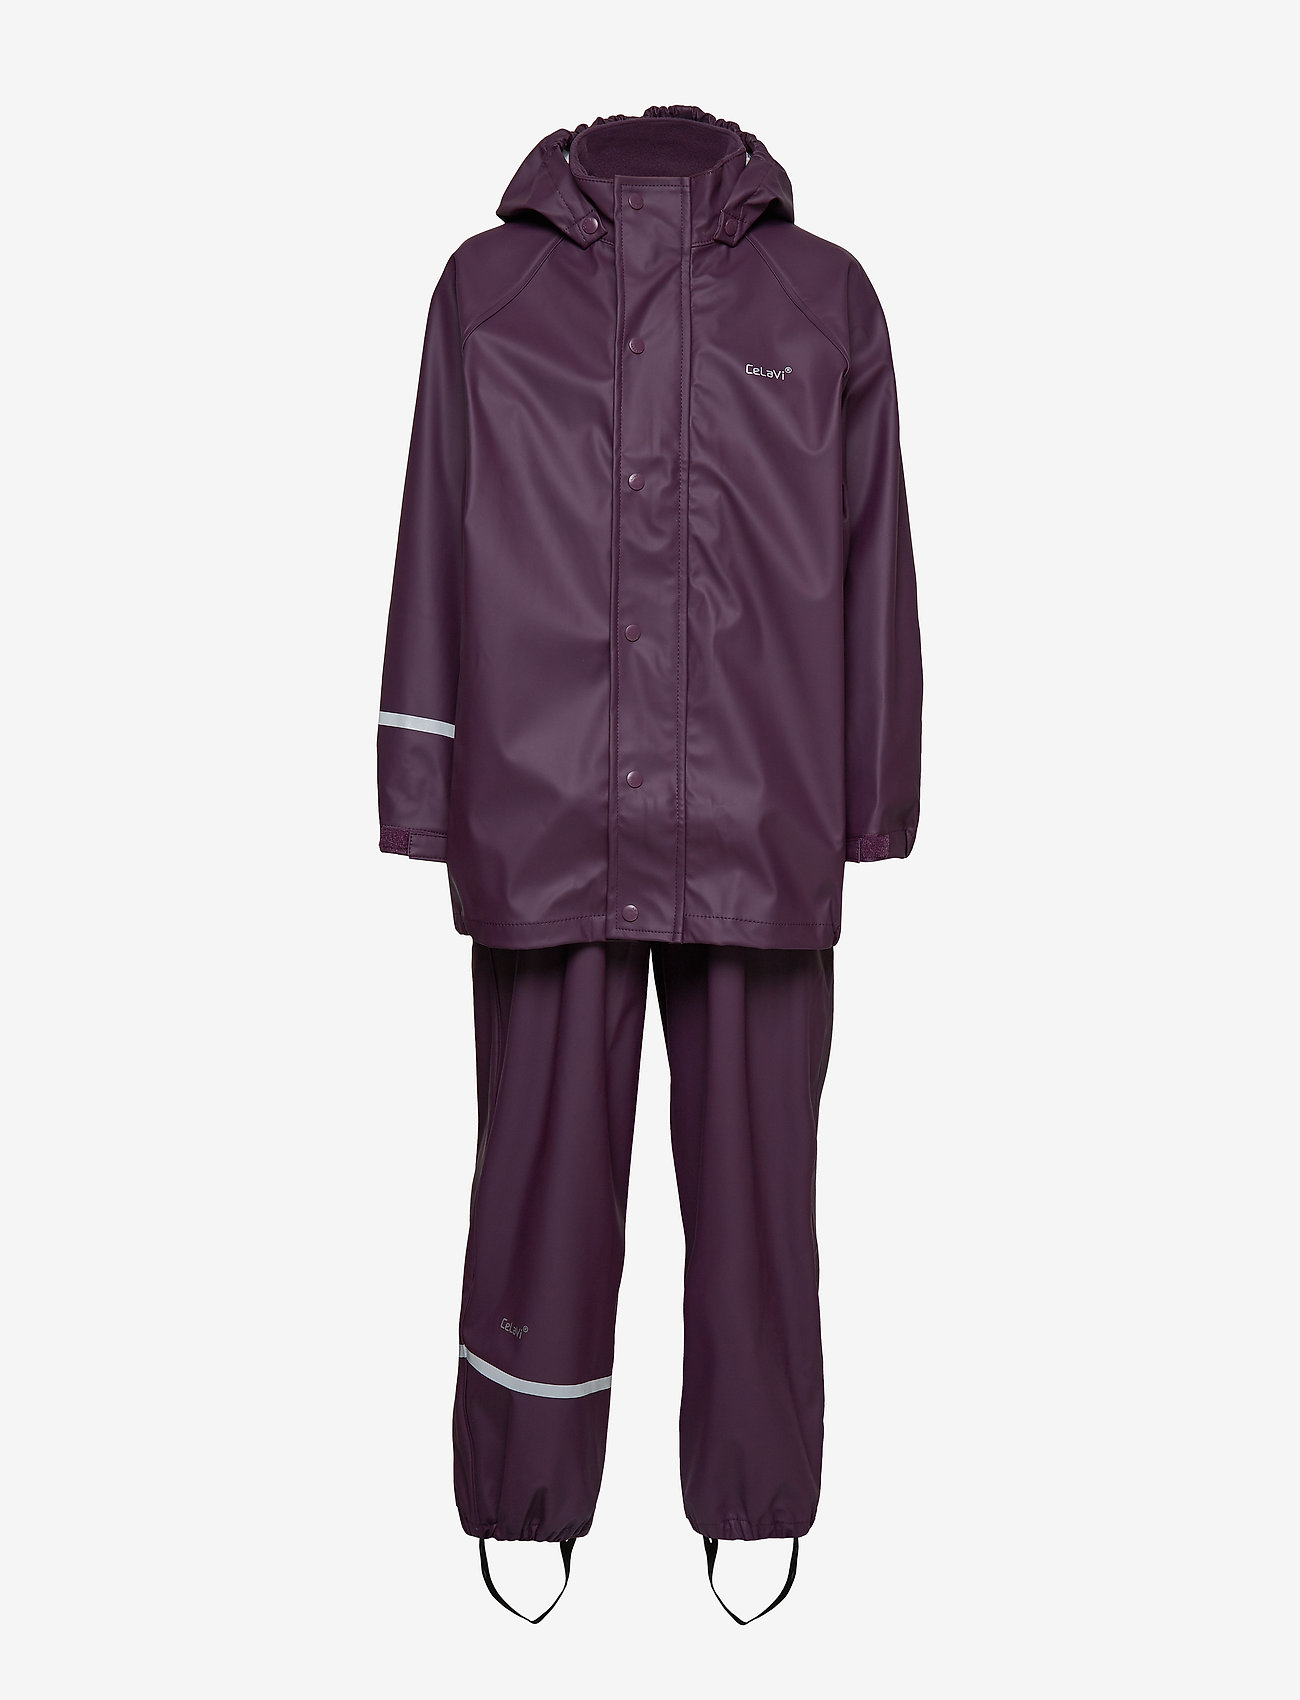 CeLaVi - Basci rainwear set, solid - vêtements de pluie - blackberry wine